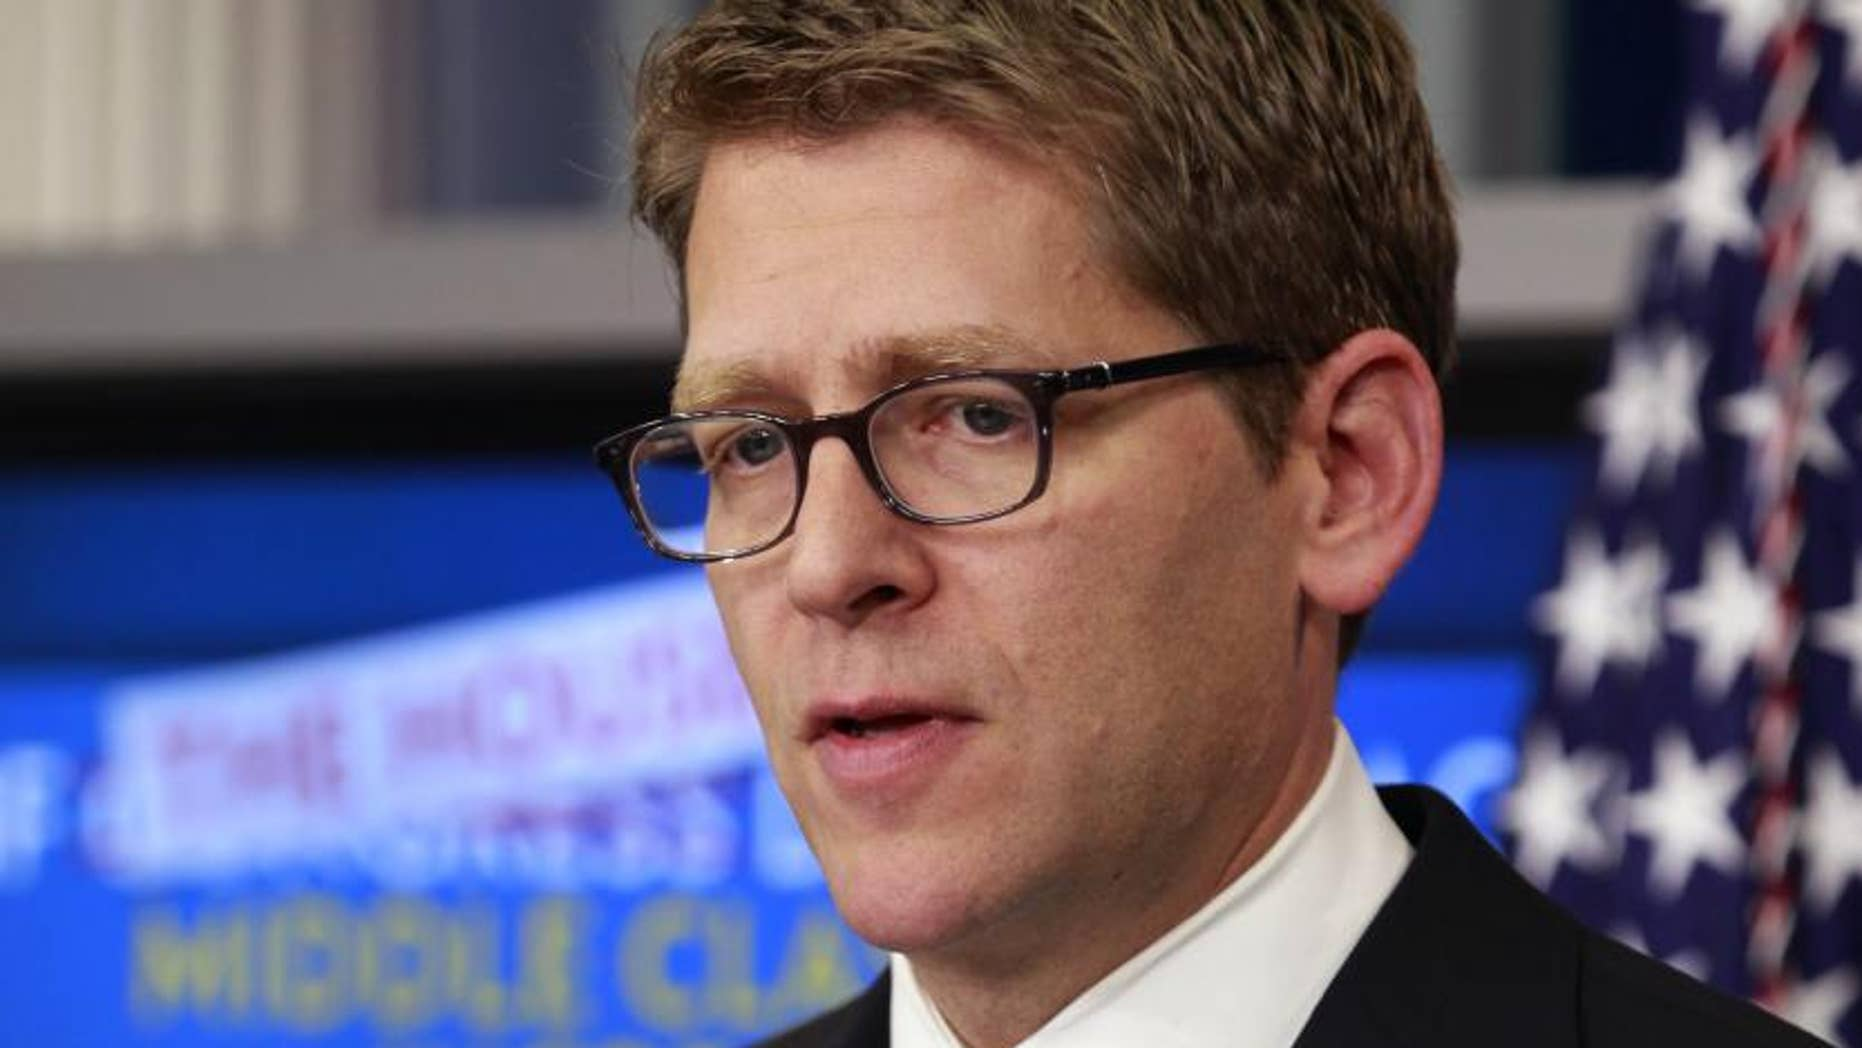 White House Press Secretary Jay Carney speaks during his daily briefing in the White House's Brady Briefing Room, Wednesday, Dec. 21, 2011, in Washington. (AP Photo/Haraz N. Ghanbari)